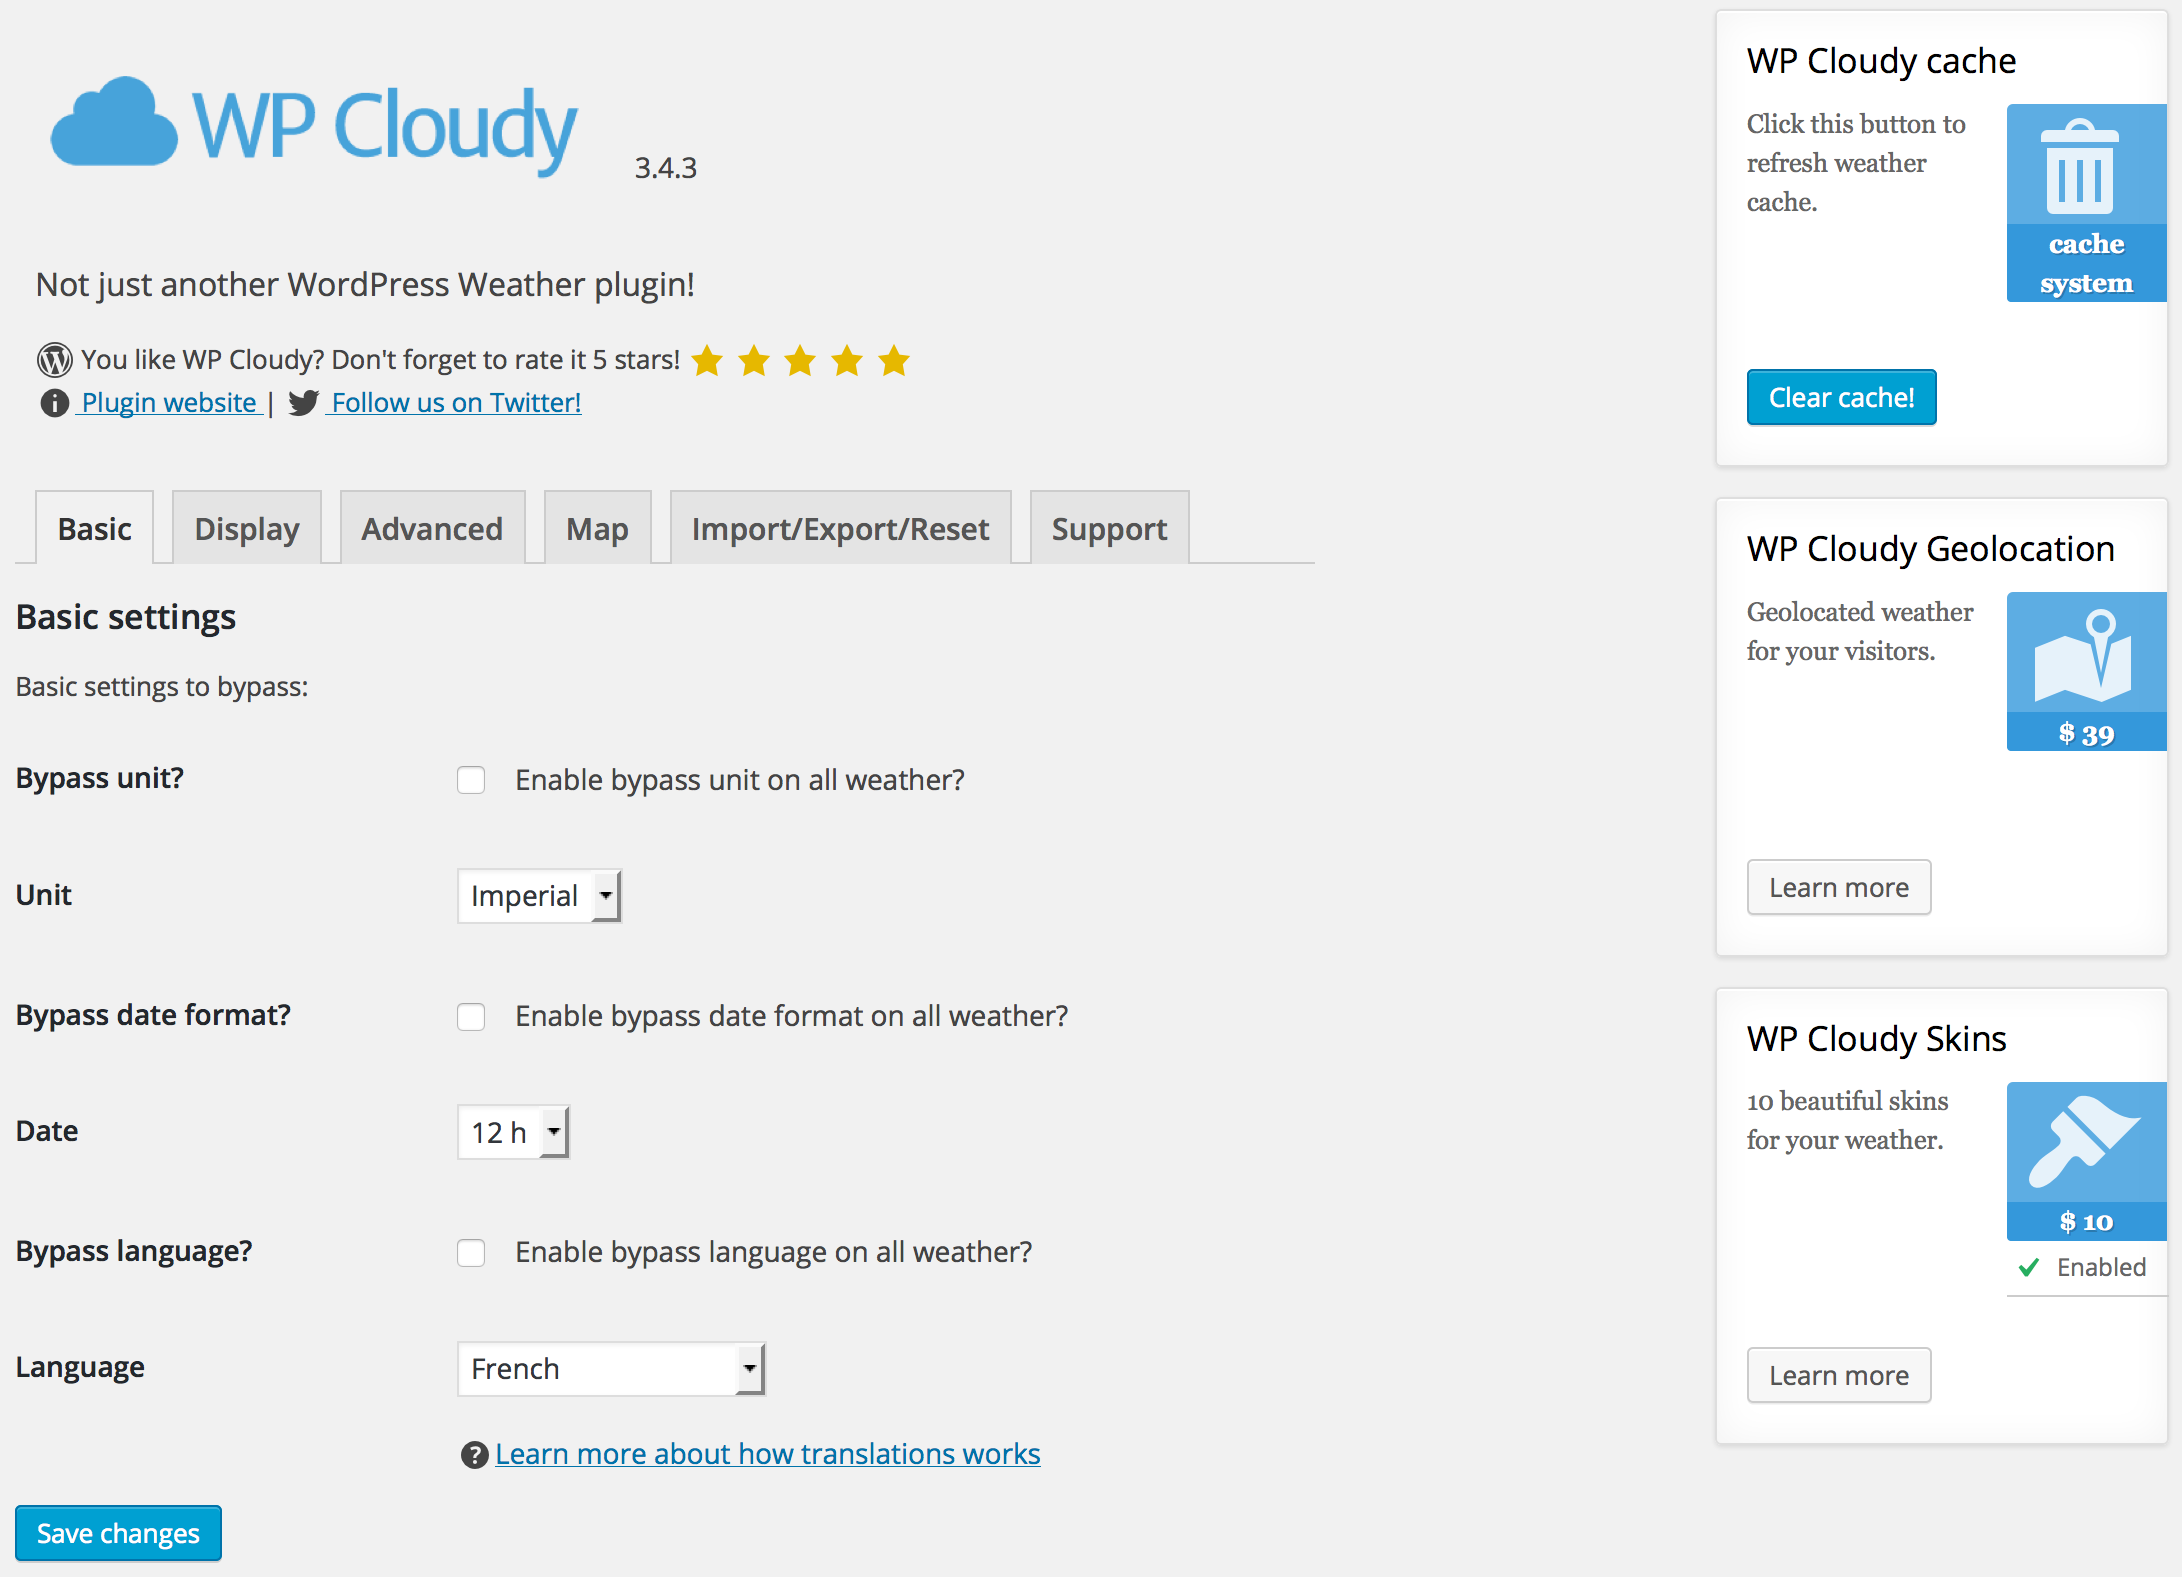 wp-cloudy screenshot 5